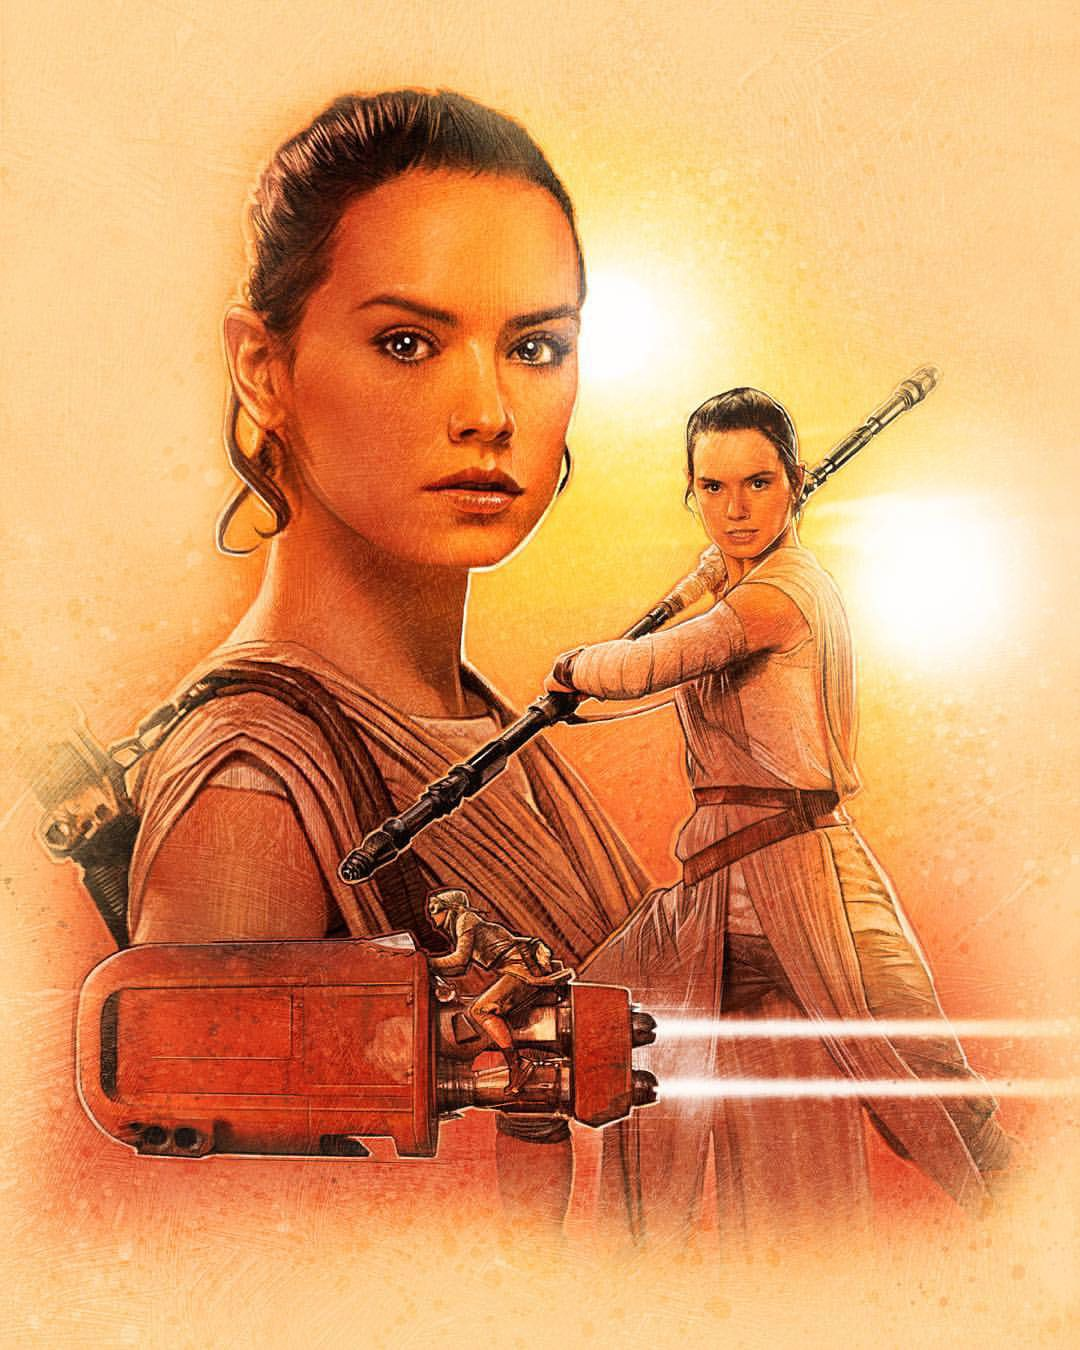 Star Wars: The Force Awakens Character Illustrations by Paul Shipper